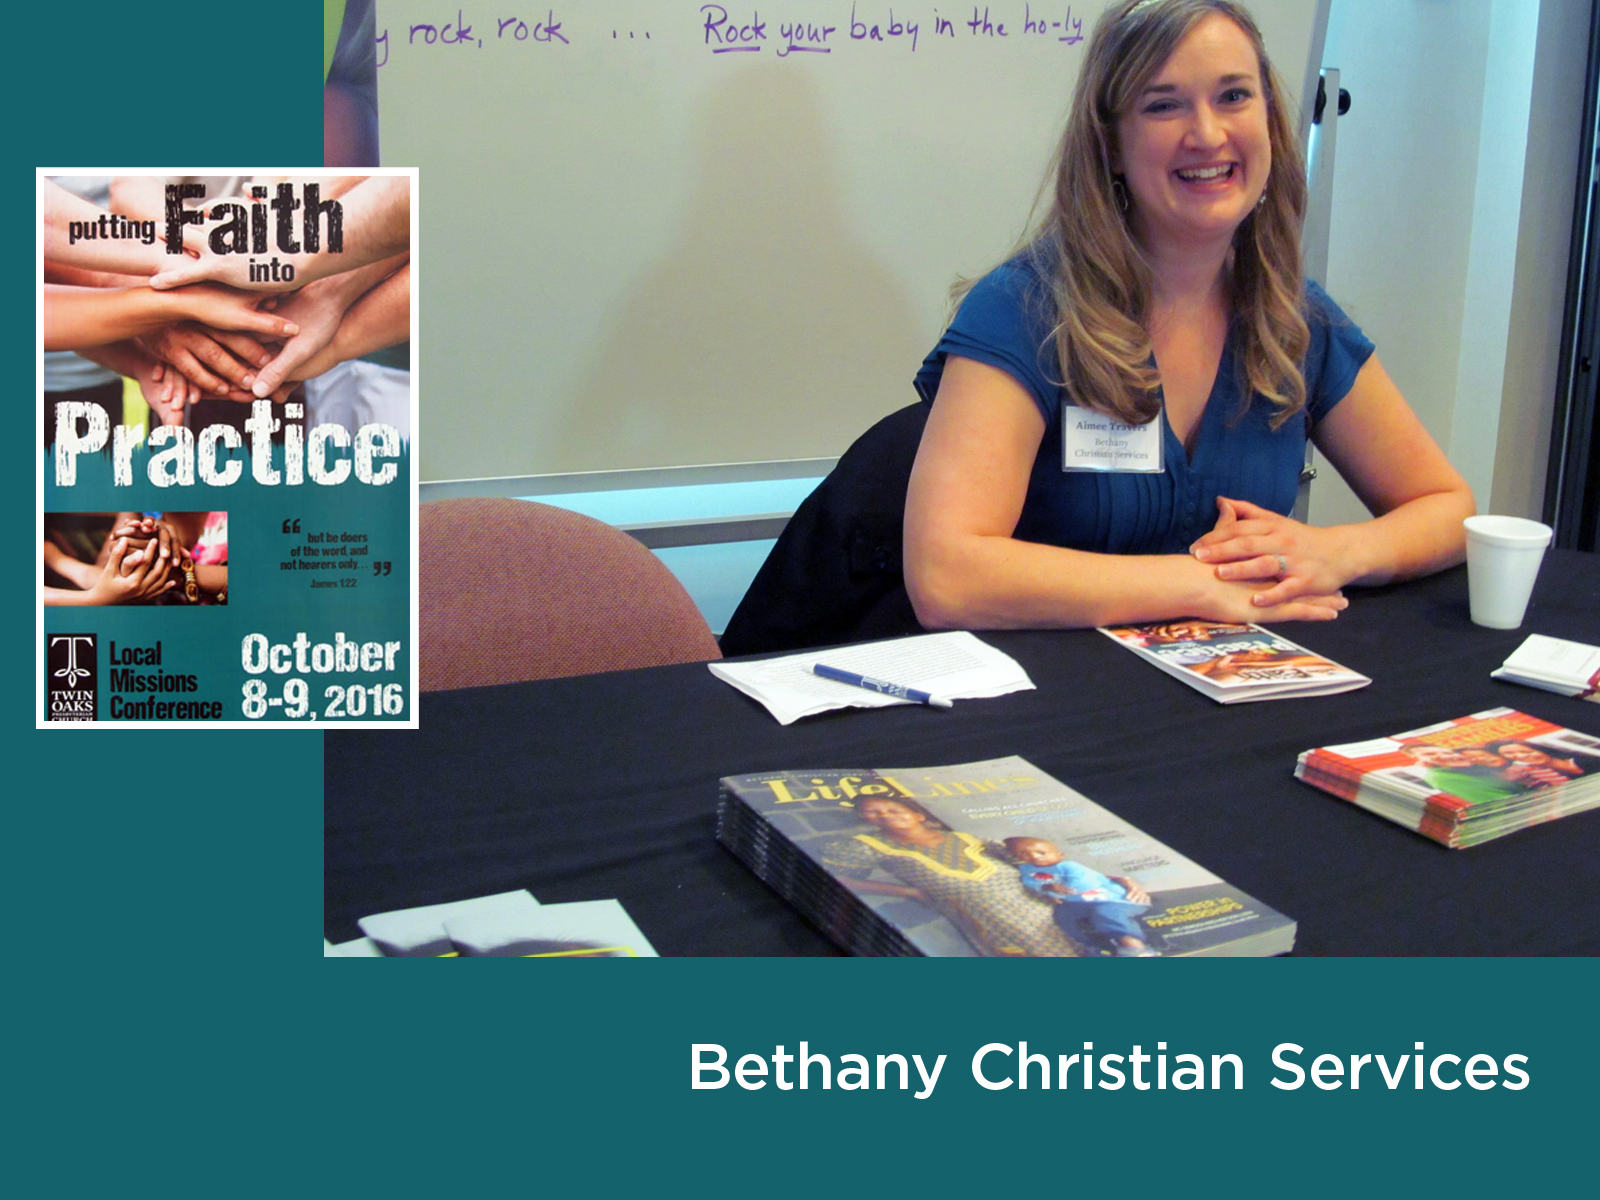 Bethany Christian Services 1.jpg